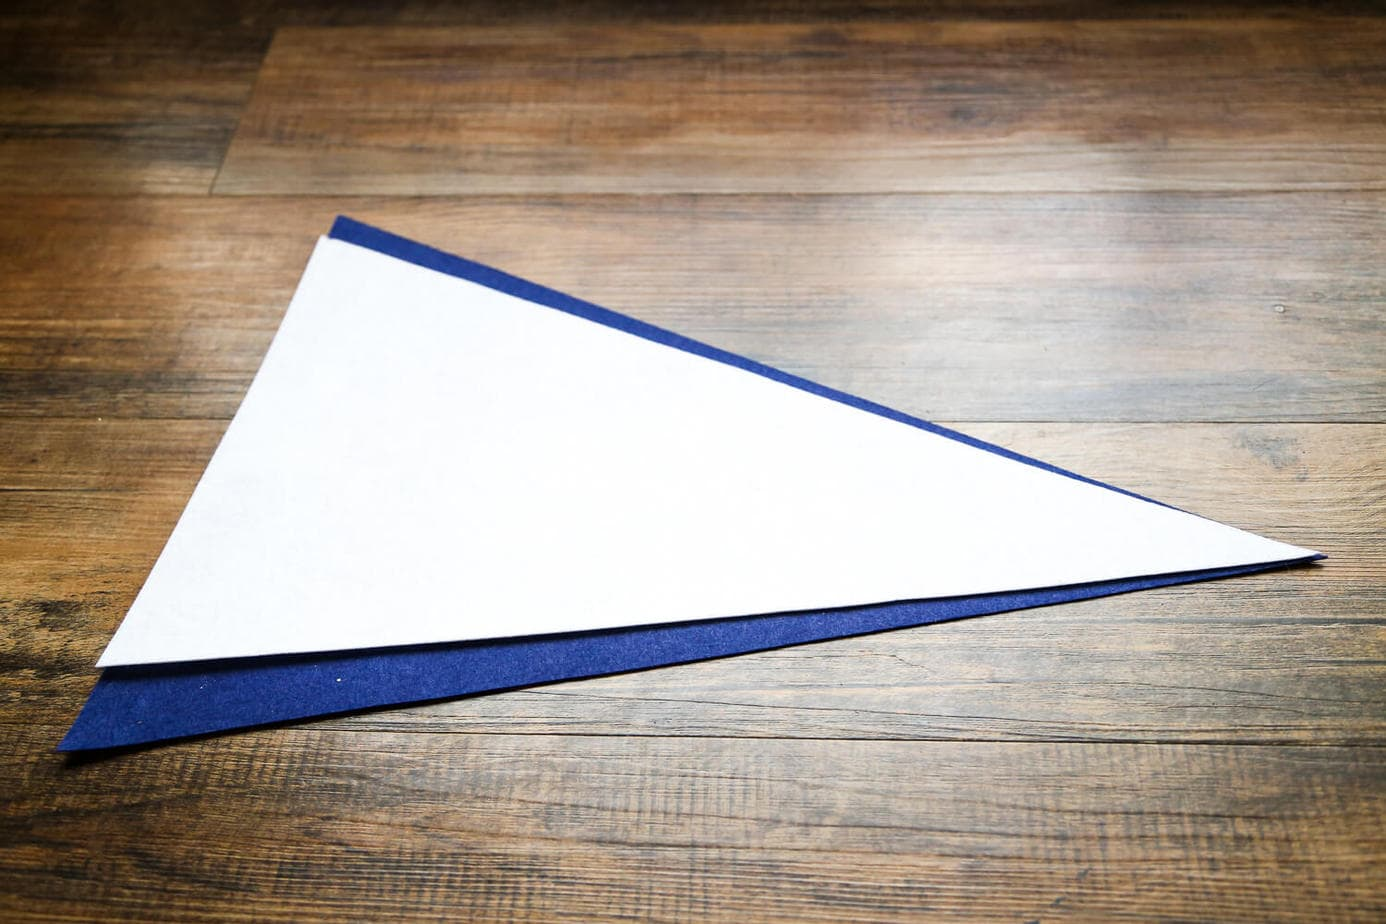 DIY No-sew felt pennant - so easy, and so adorable! You can make your kid's name or any other word. Easy, fast craft that will take less than an hour!